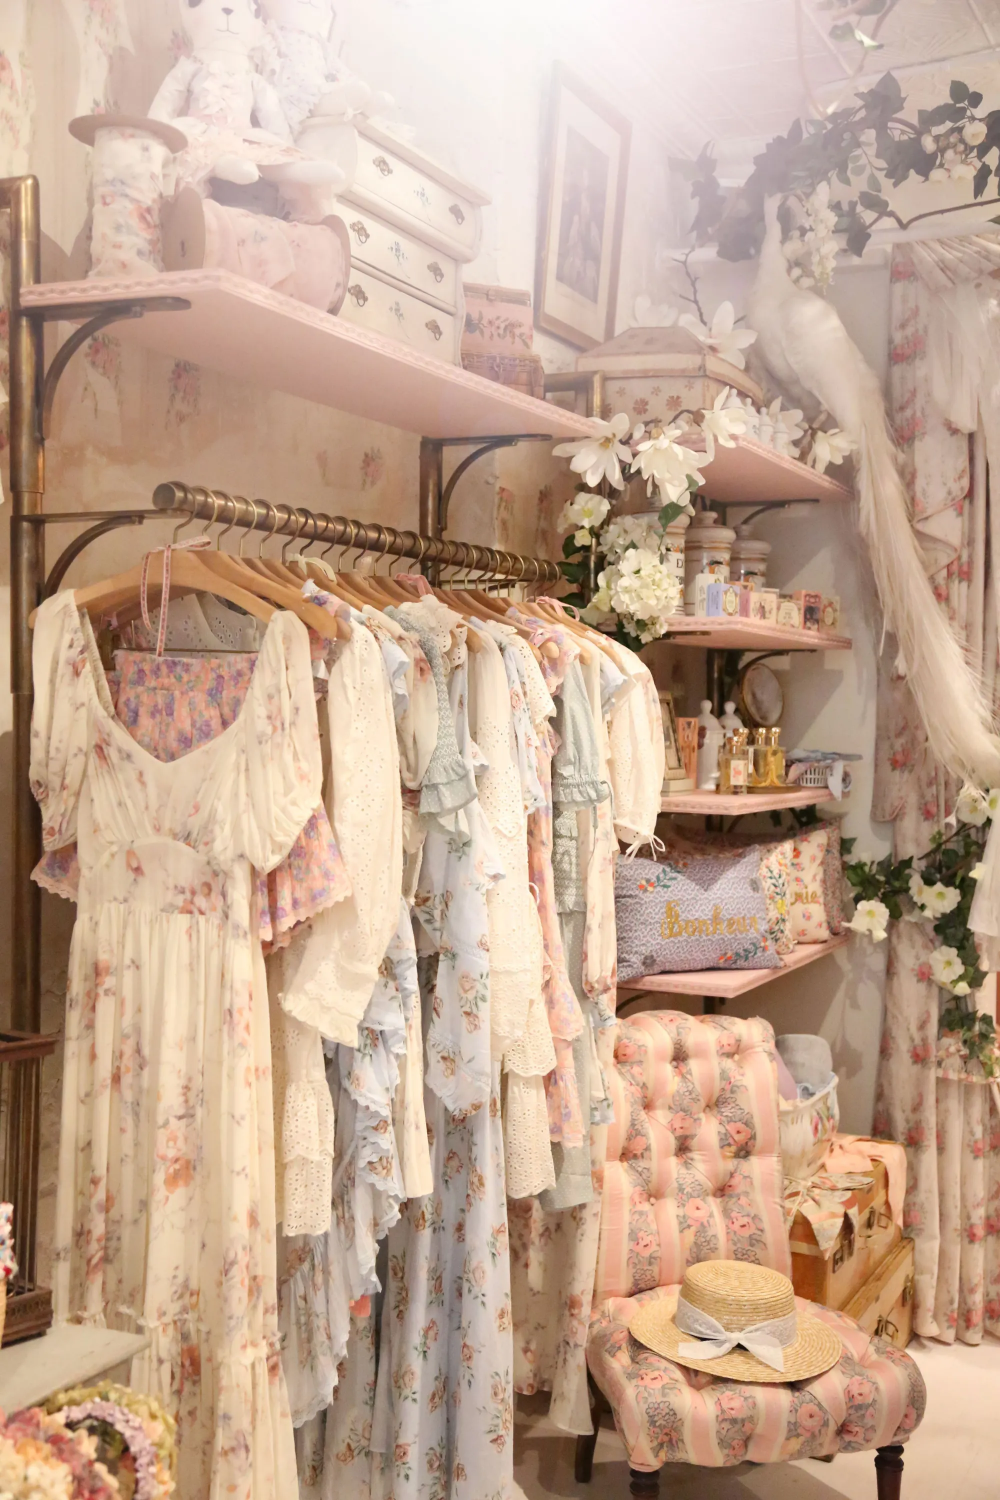 Welcome To Our Wonderland In 2020 Vintage Dresses Aesthetic Clothes Princess Aesthetic